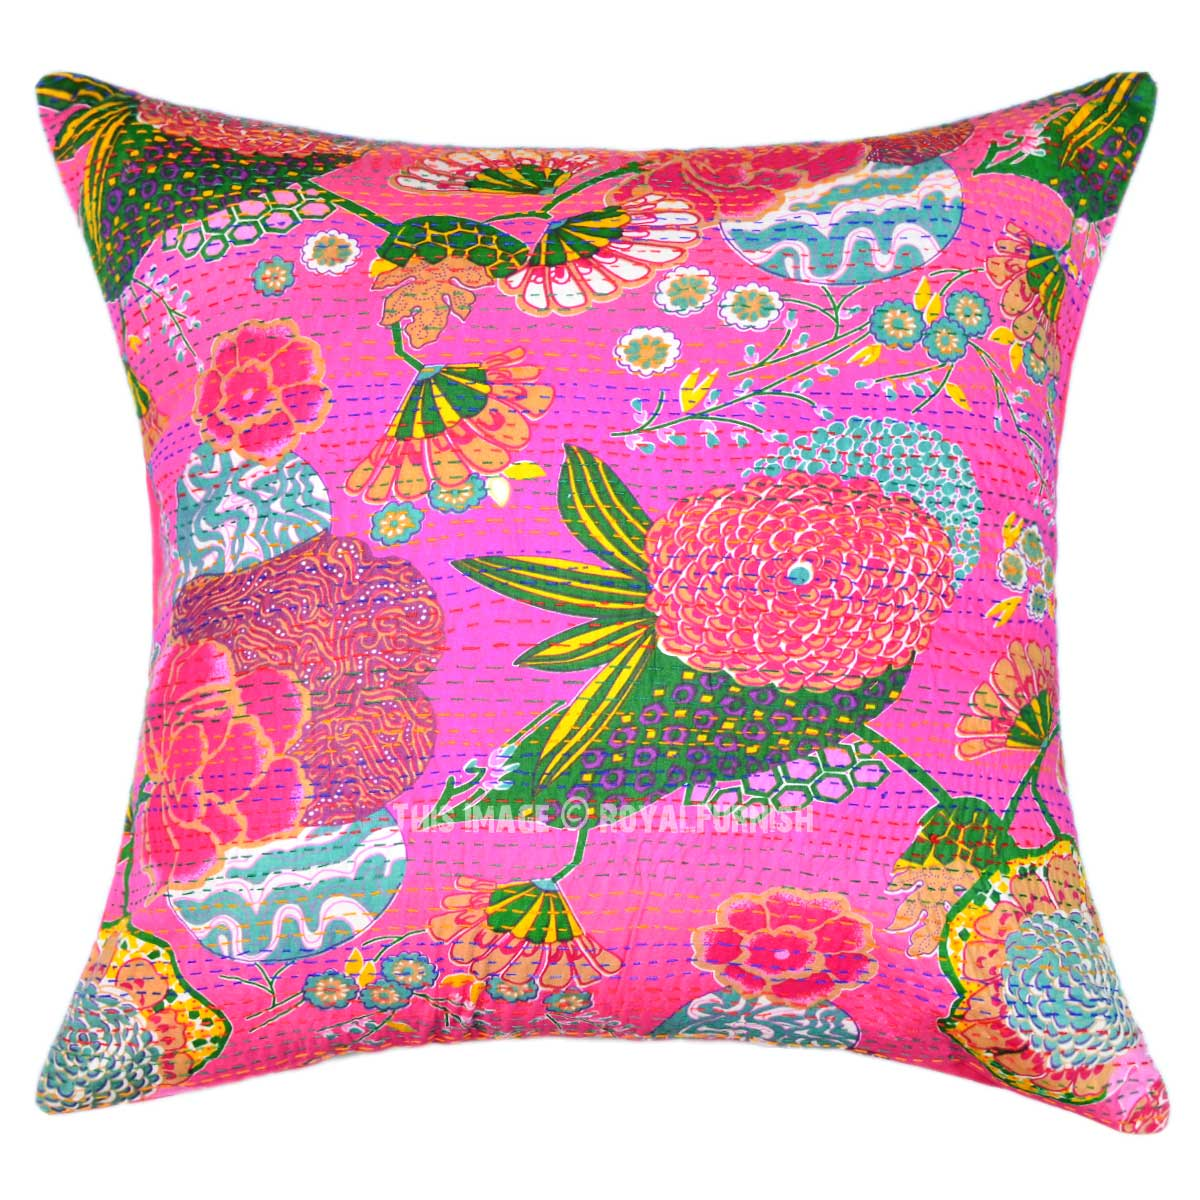 Oversize Decorative Square Kantha Throw Pillow Cover, Boho Accent 24X24 - RoyalFurnish.com